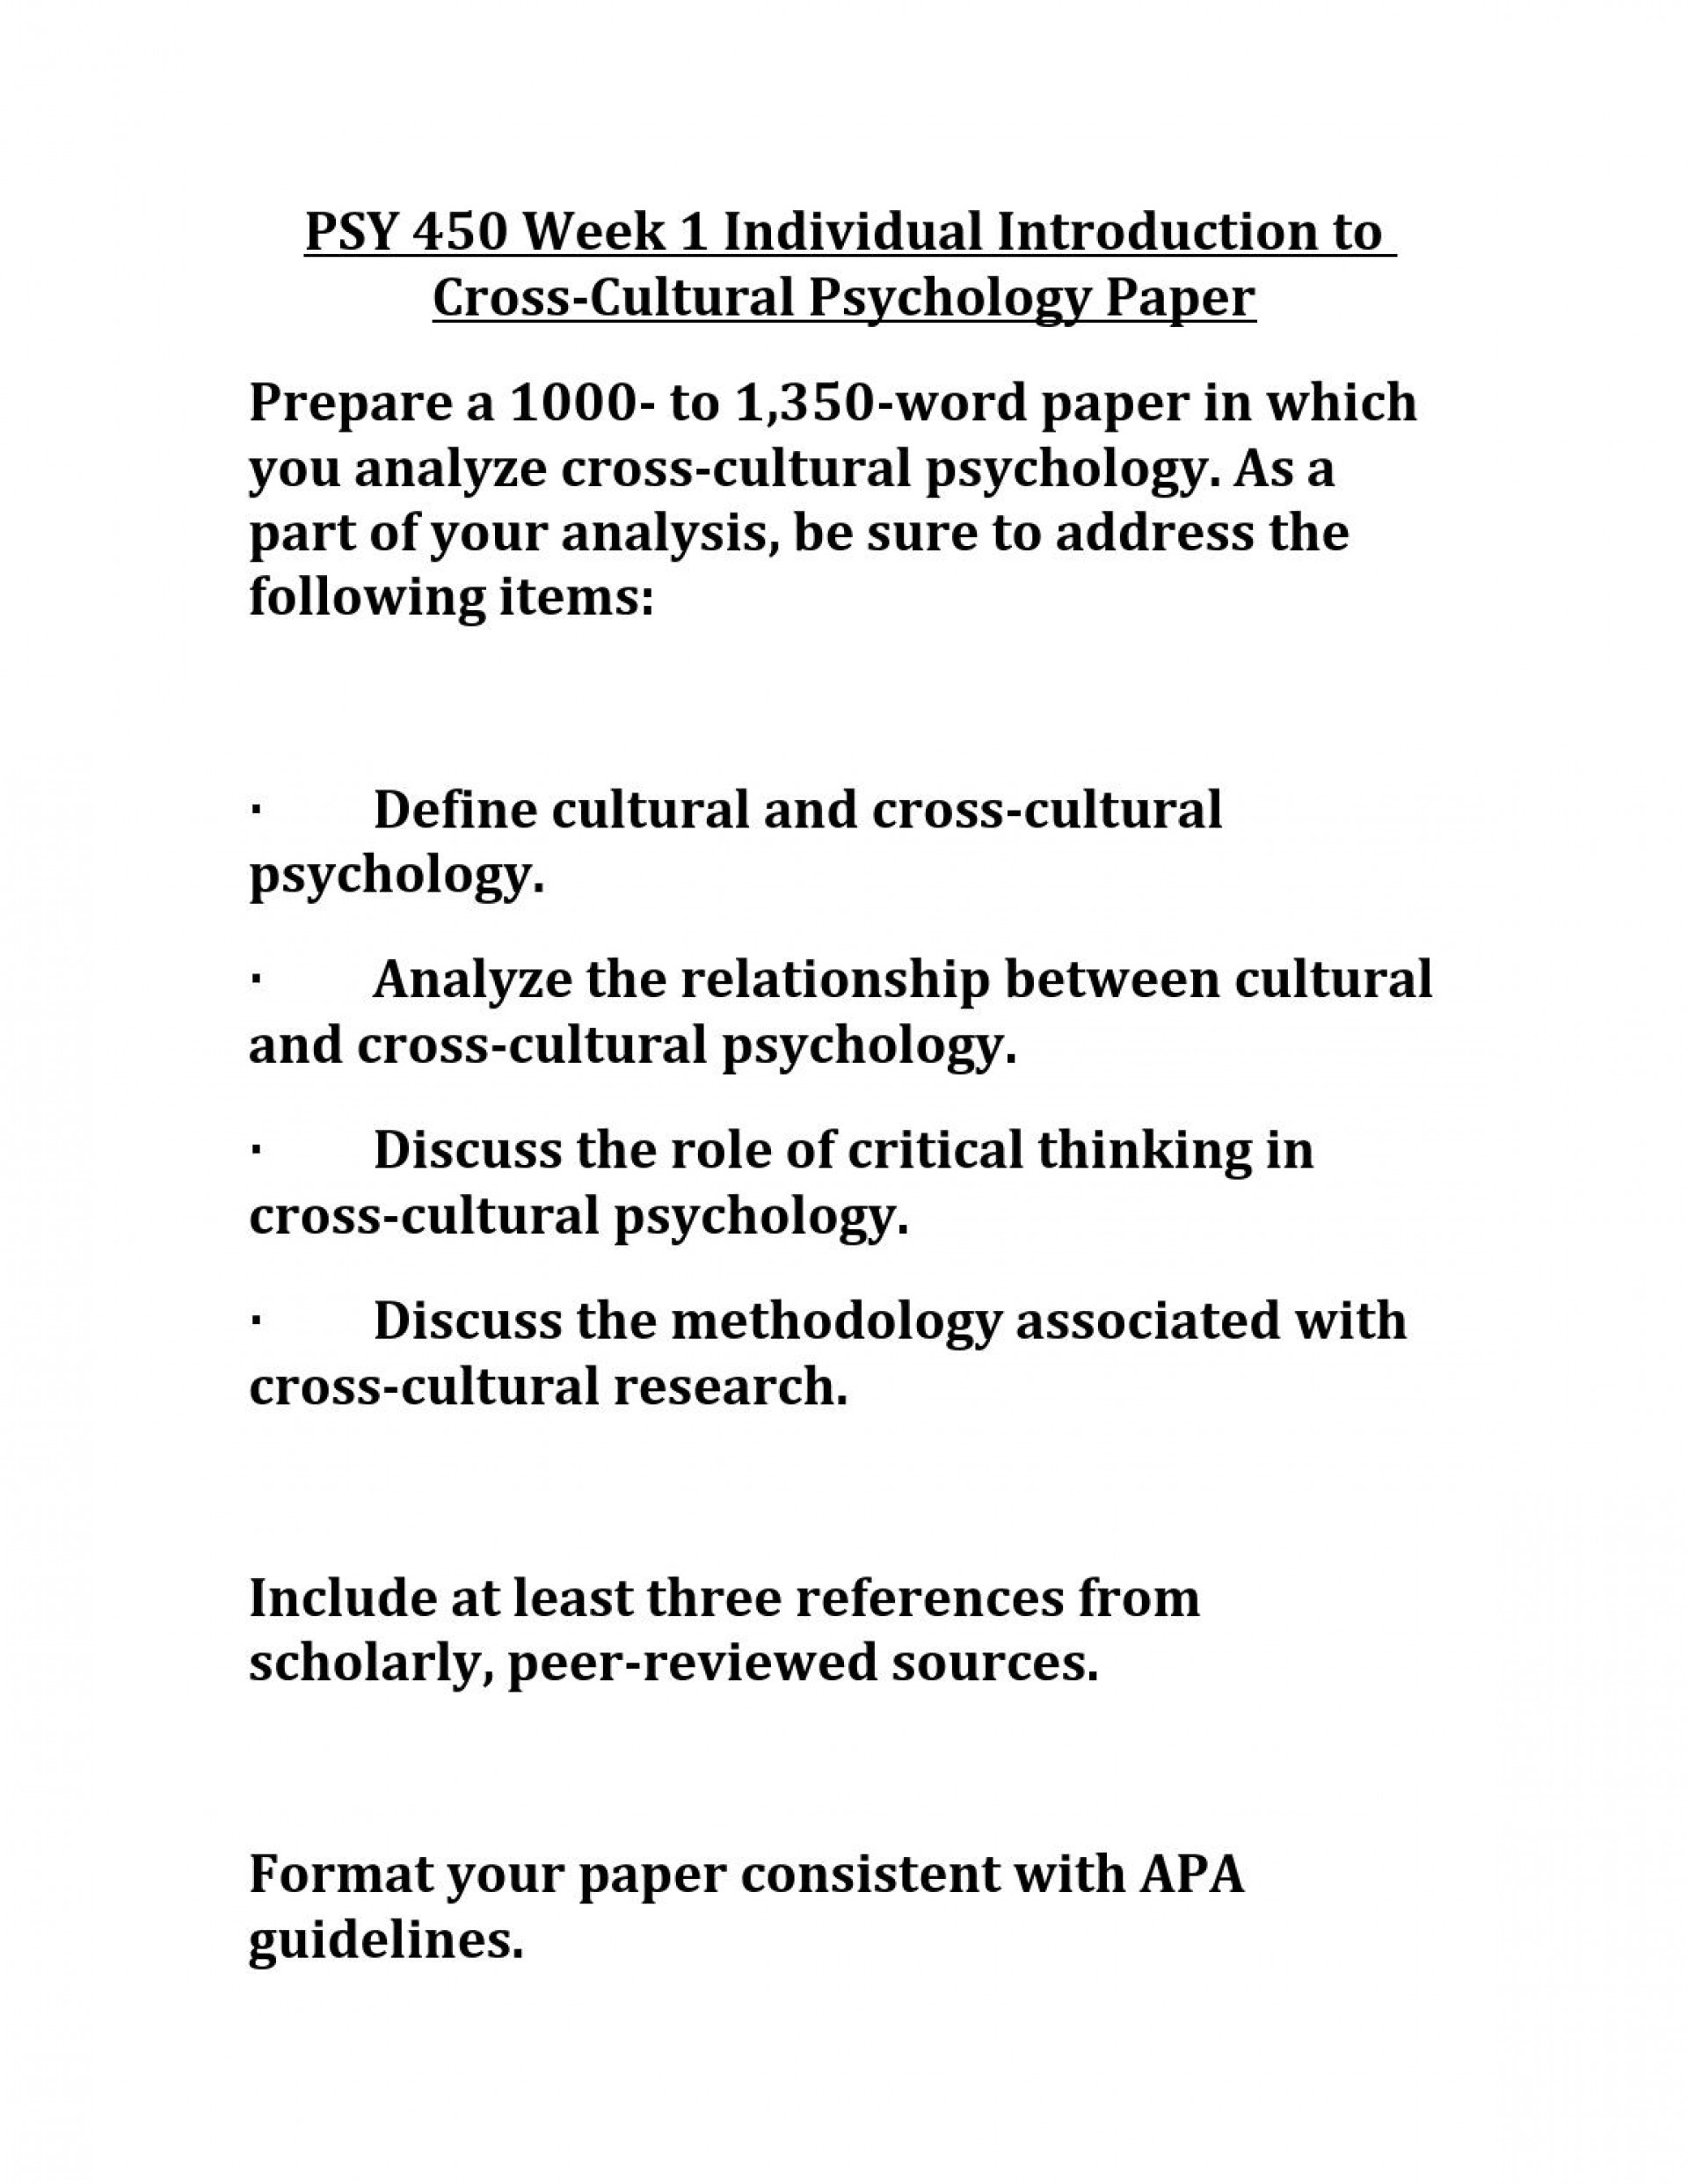 007 Cultural Psychology Topics For Research Paper Page 1 Sensational 1920